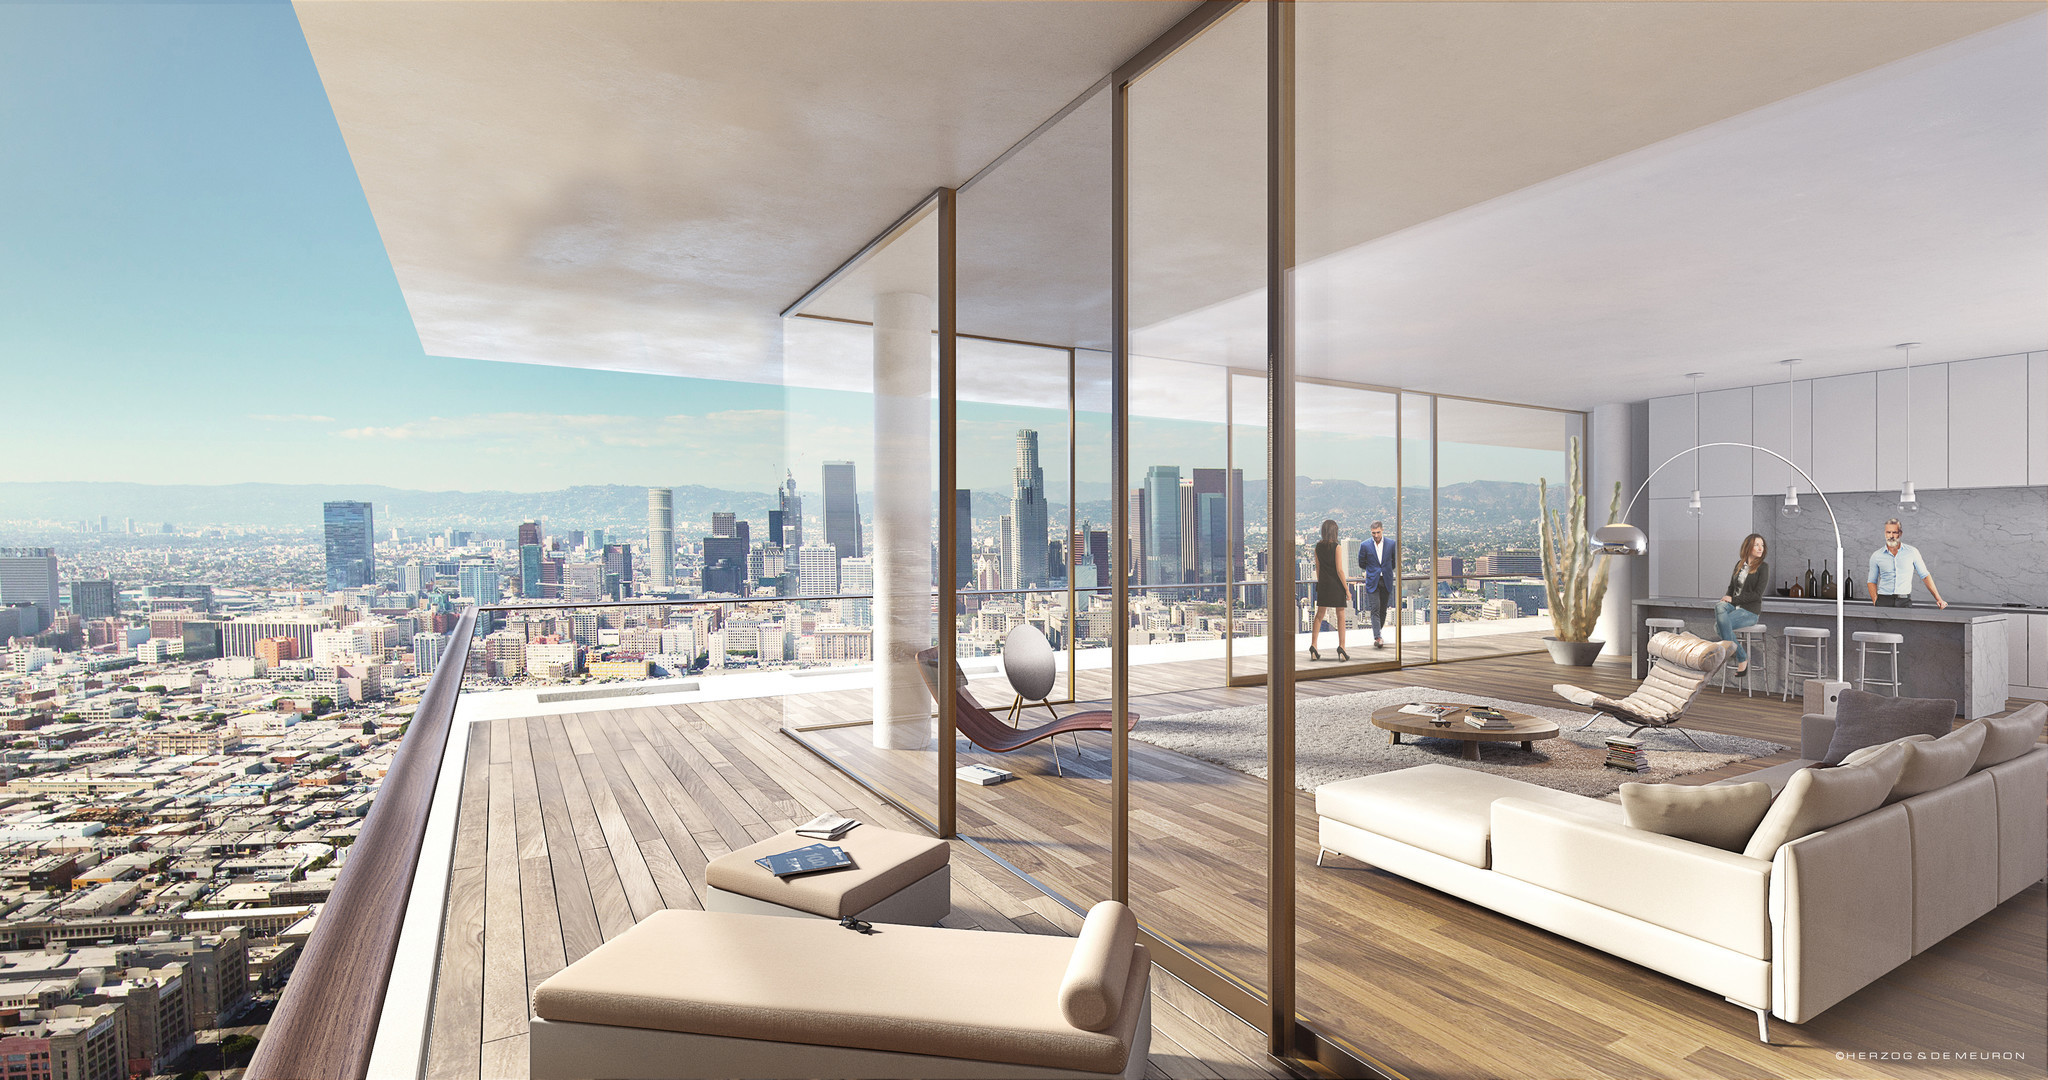 Rendering of the 6AM project with view pointed toward the downtown L.A. skyline.